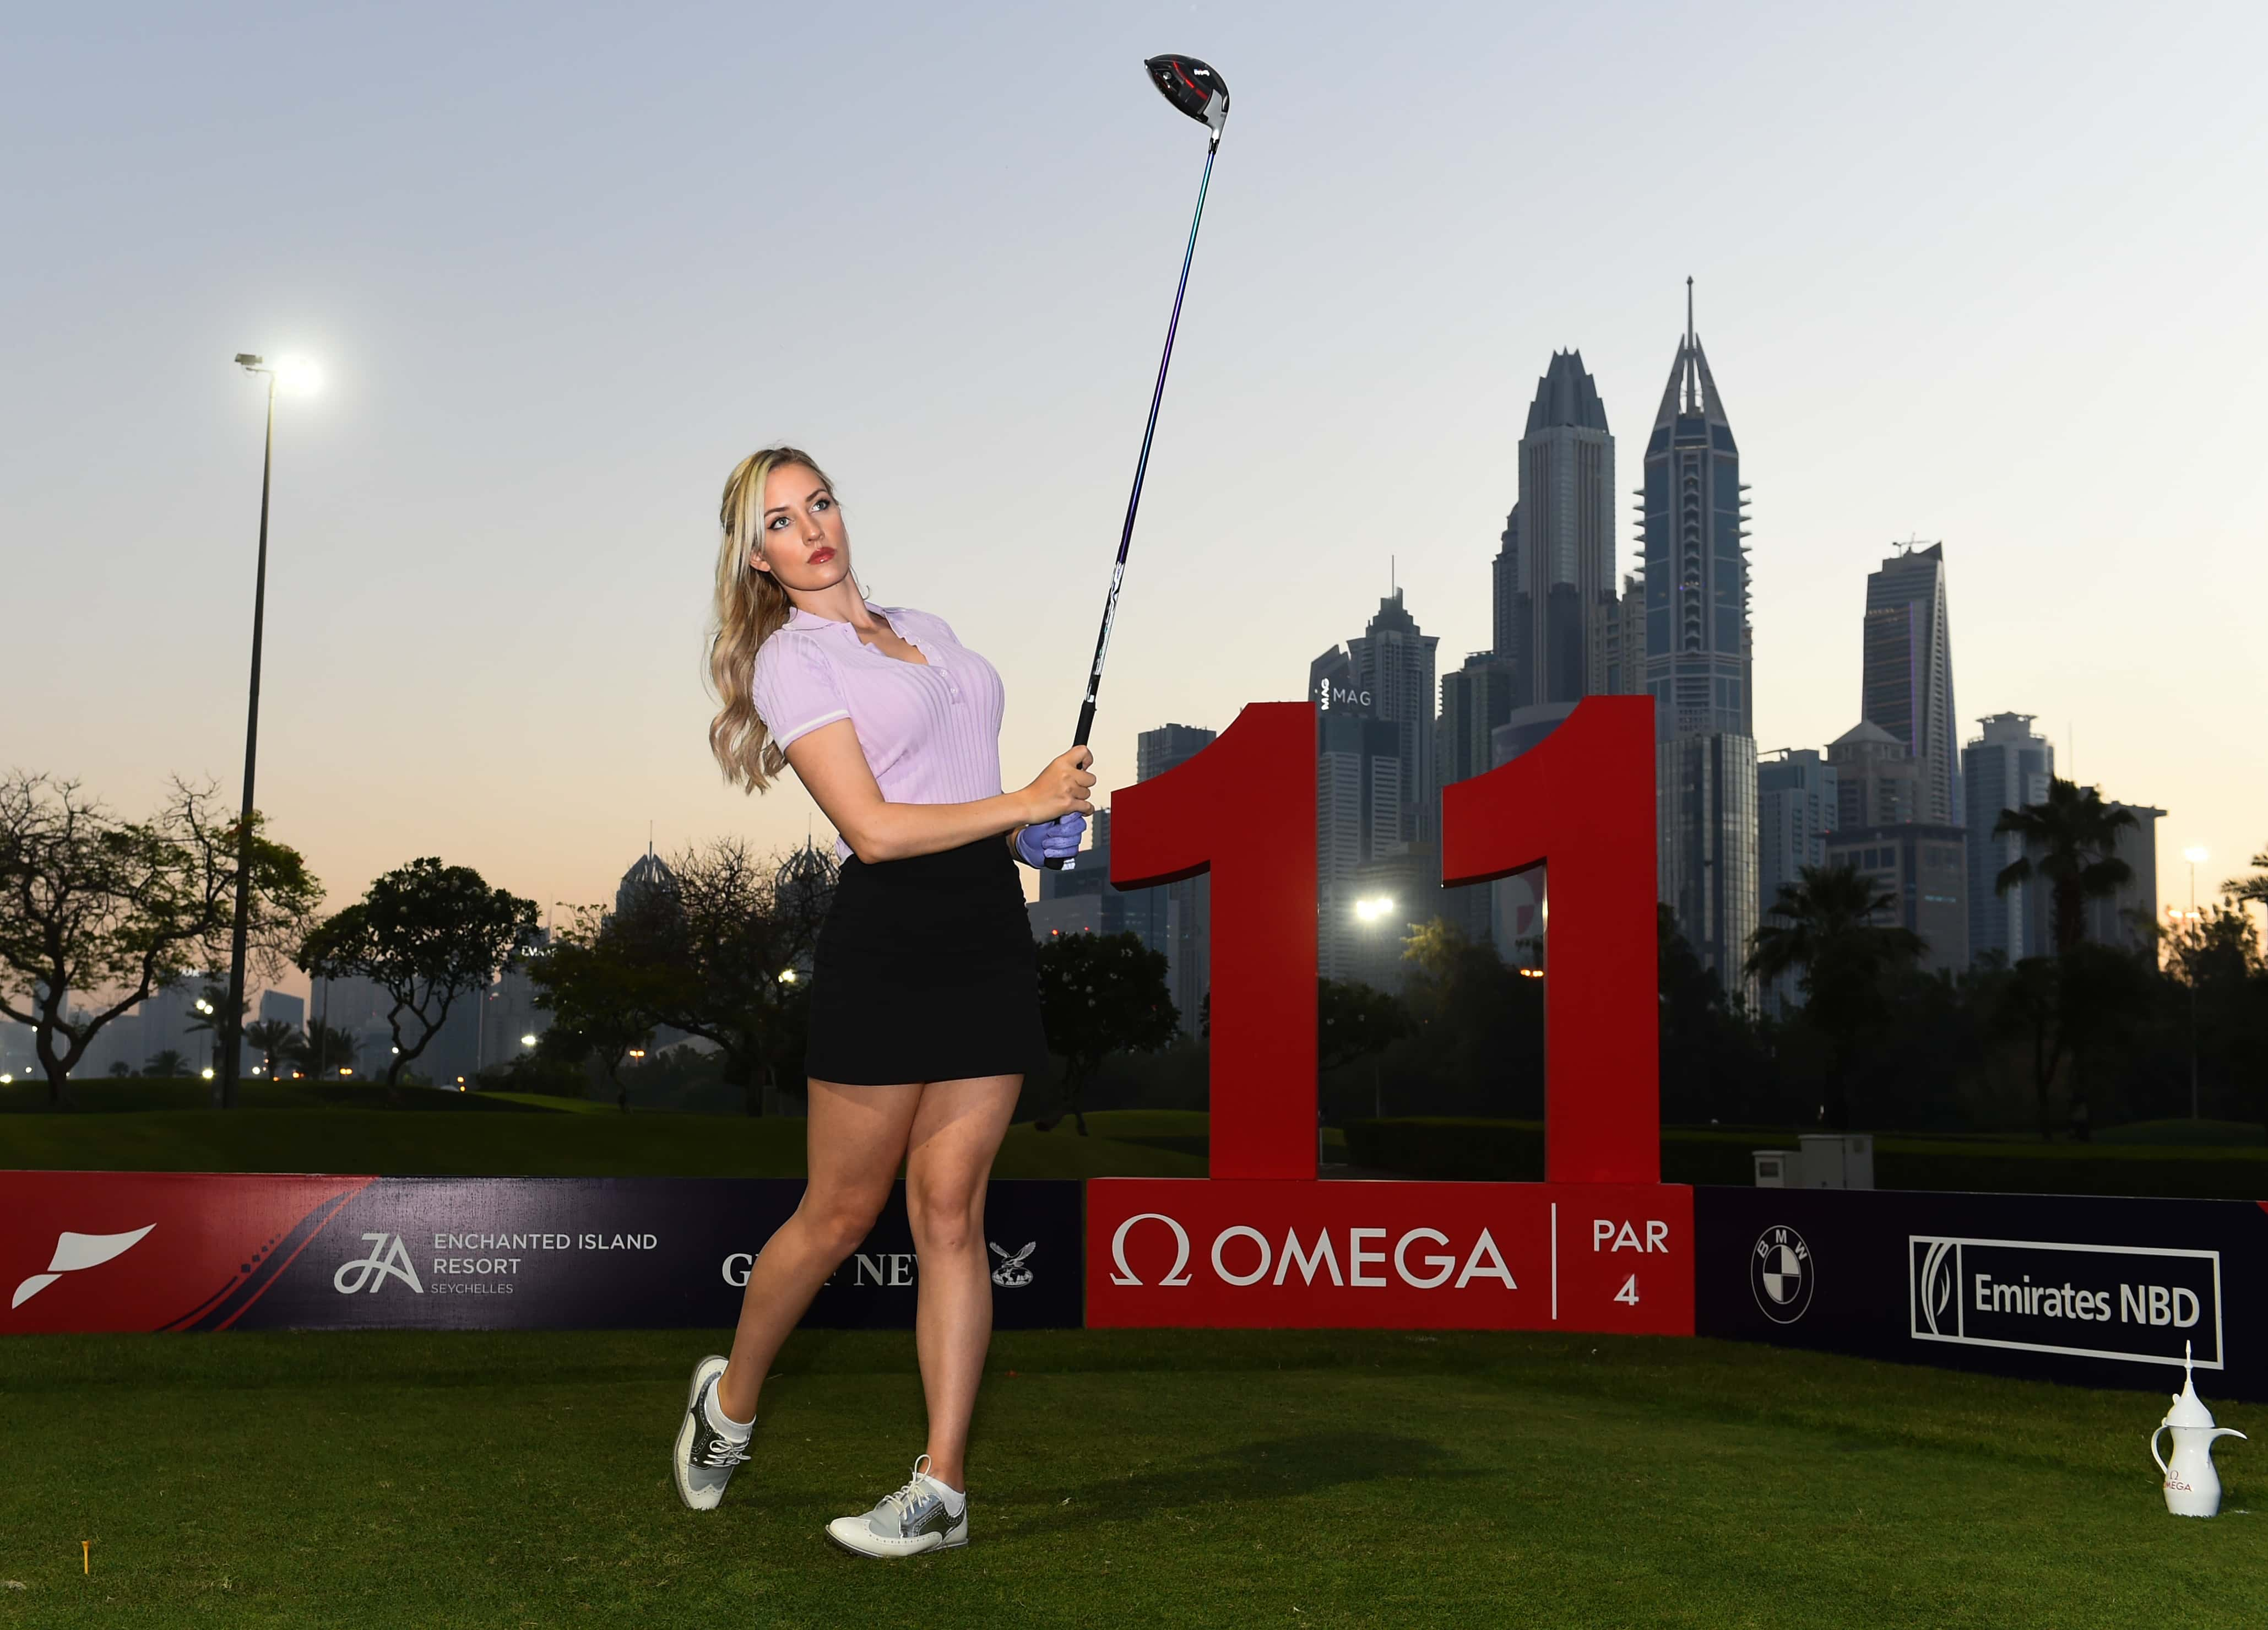 Former Pro Golfer Paige Spiranac Claims Dates Would Use